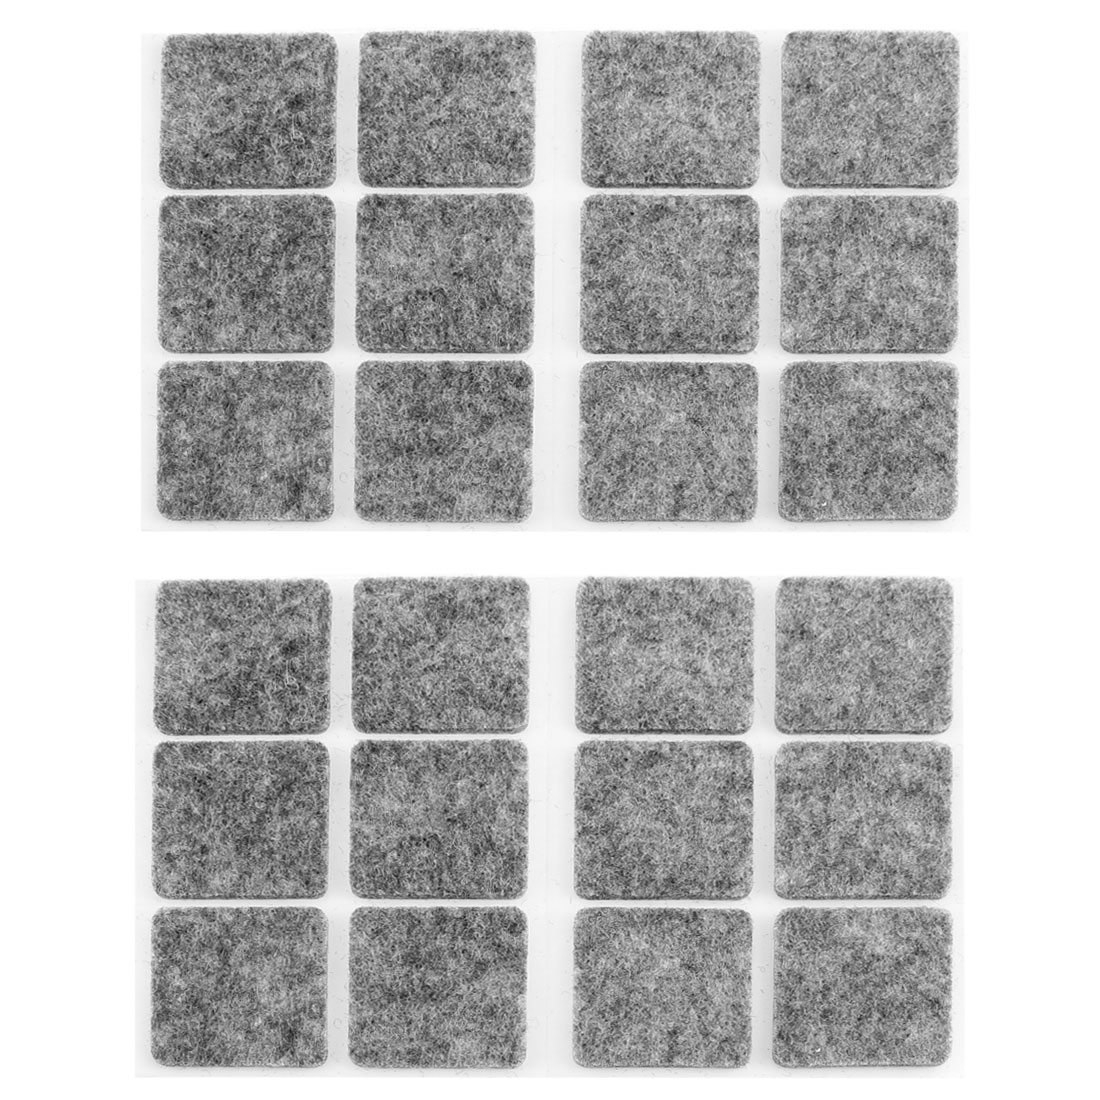 Furniture Feet Non Slip Self Adhesive Felt Protector Pads Floor Care Mats 24pcs